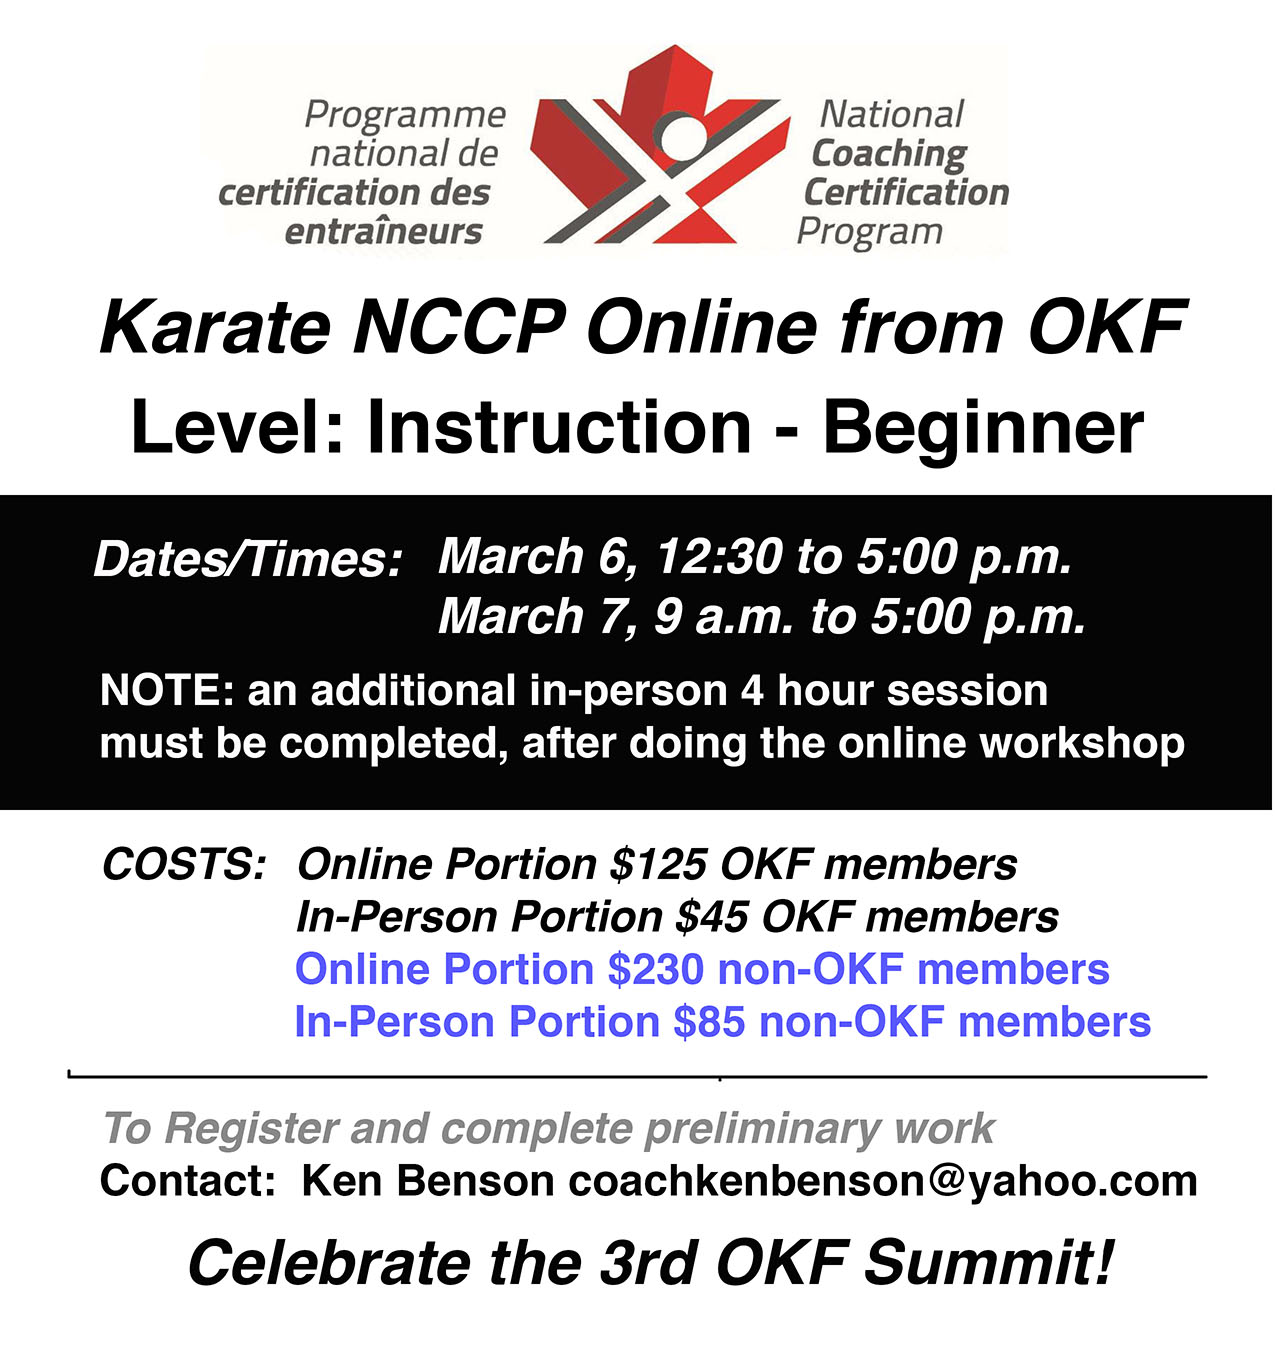 NCCP online from OKF